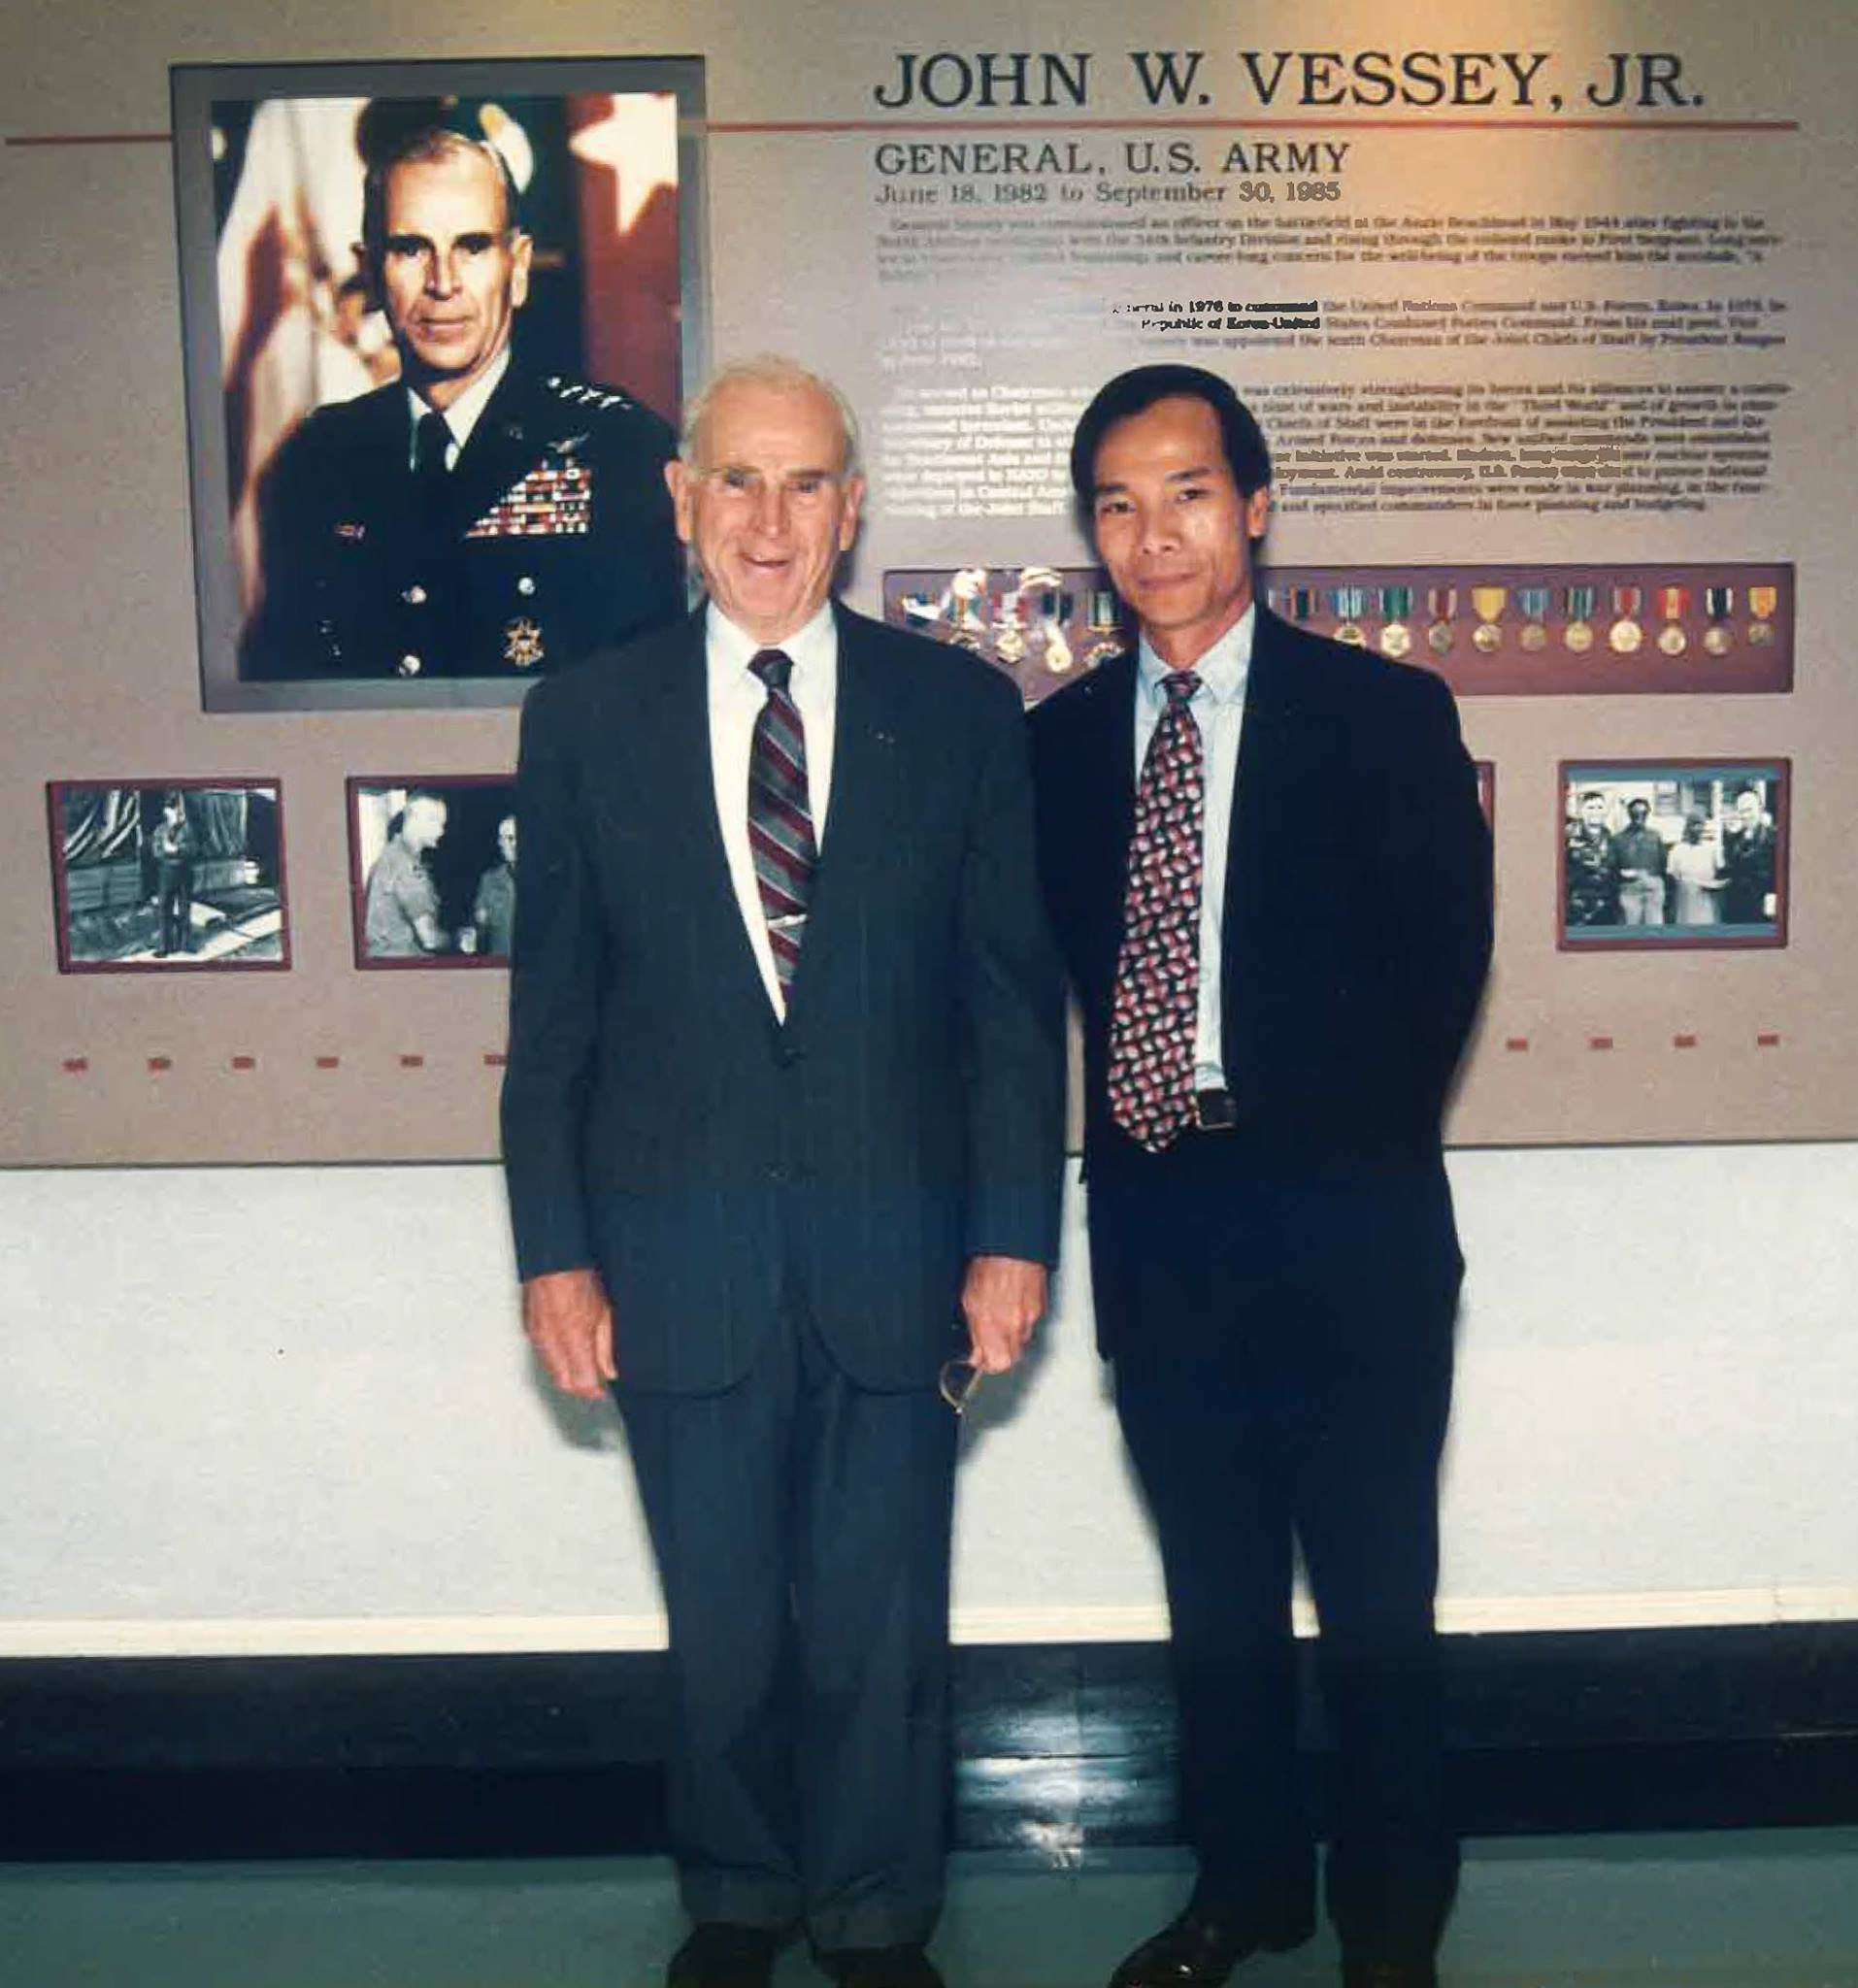 General John Vessey, former Chairman of the Joint Chiefs of Staff and Ca Tran.